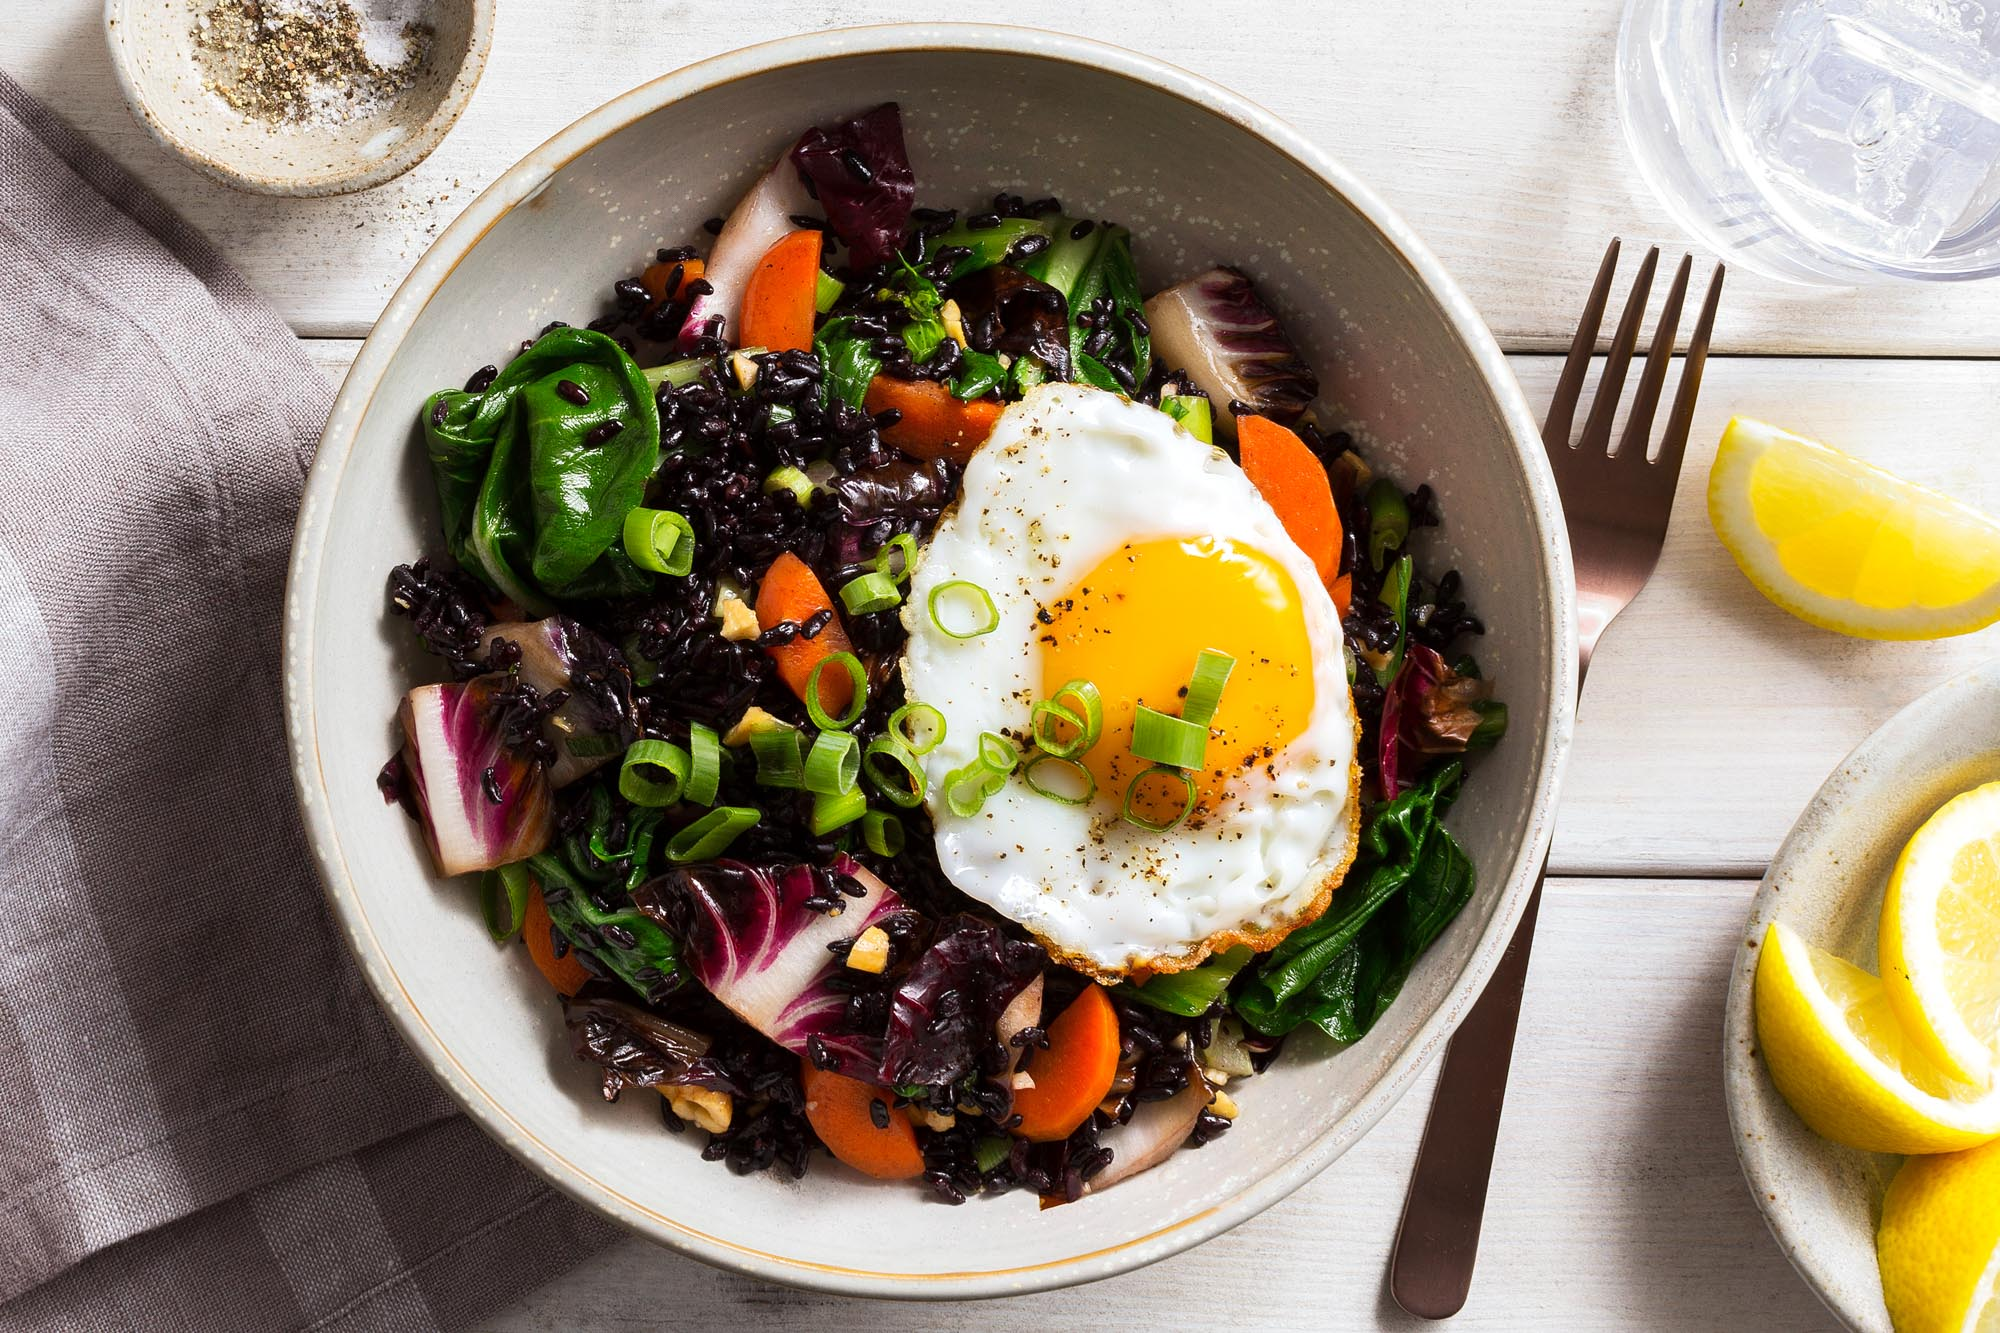 Thai stir-fry with bok choy, black rice, and fried eggs